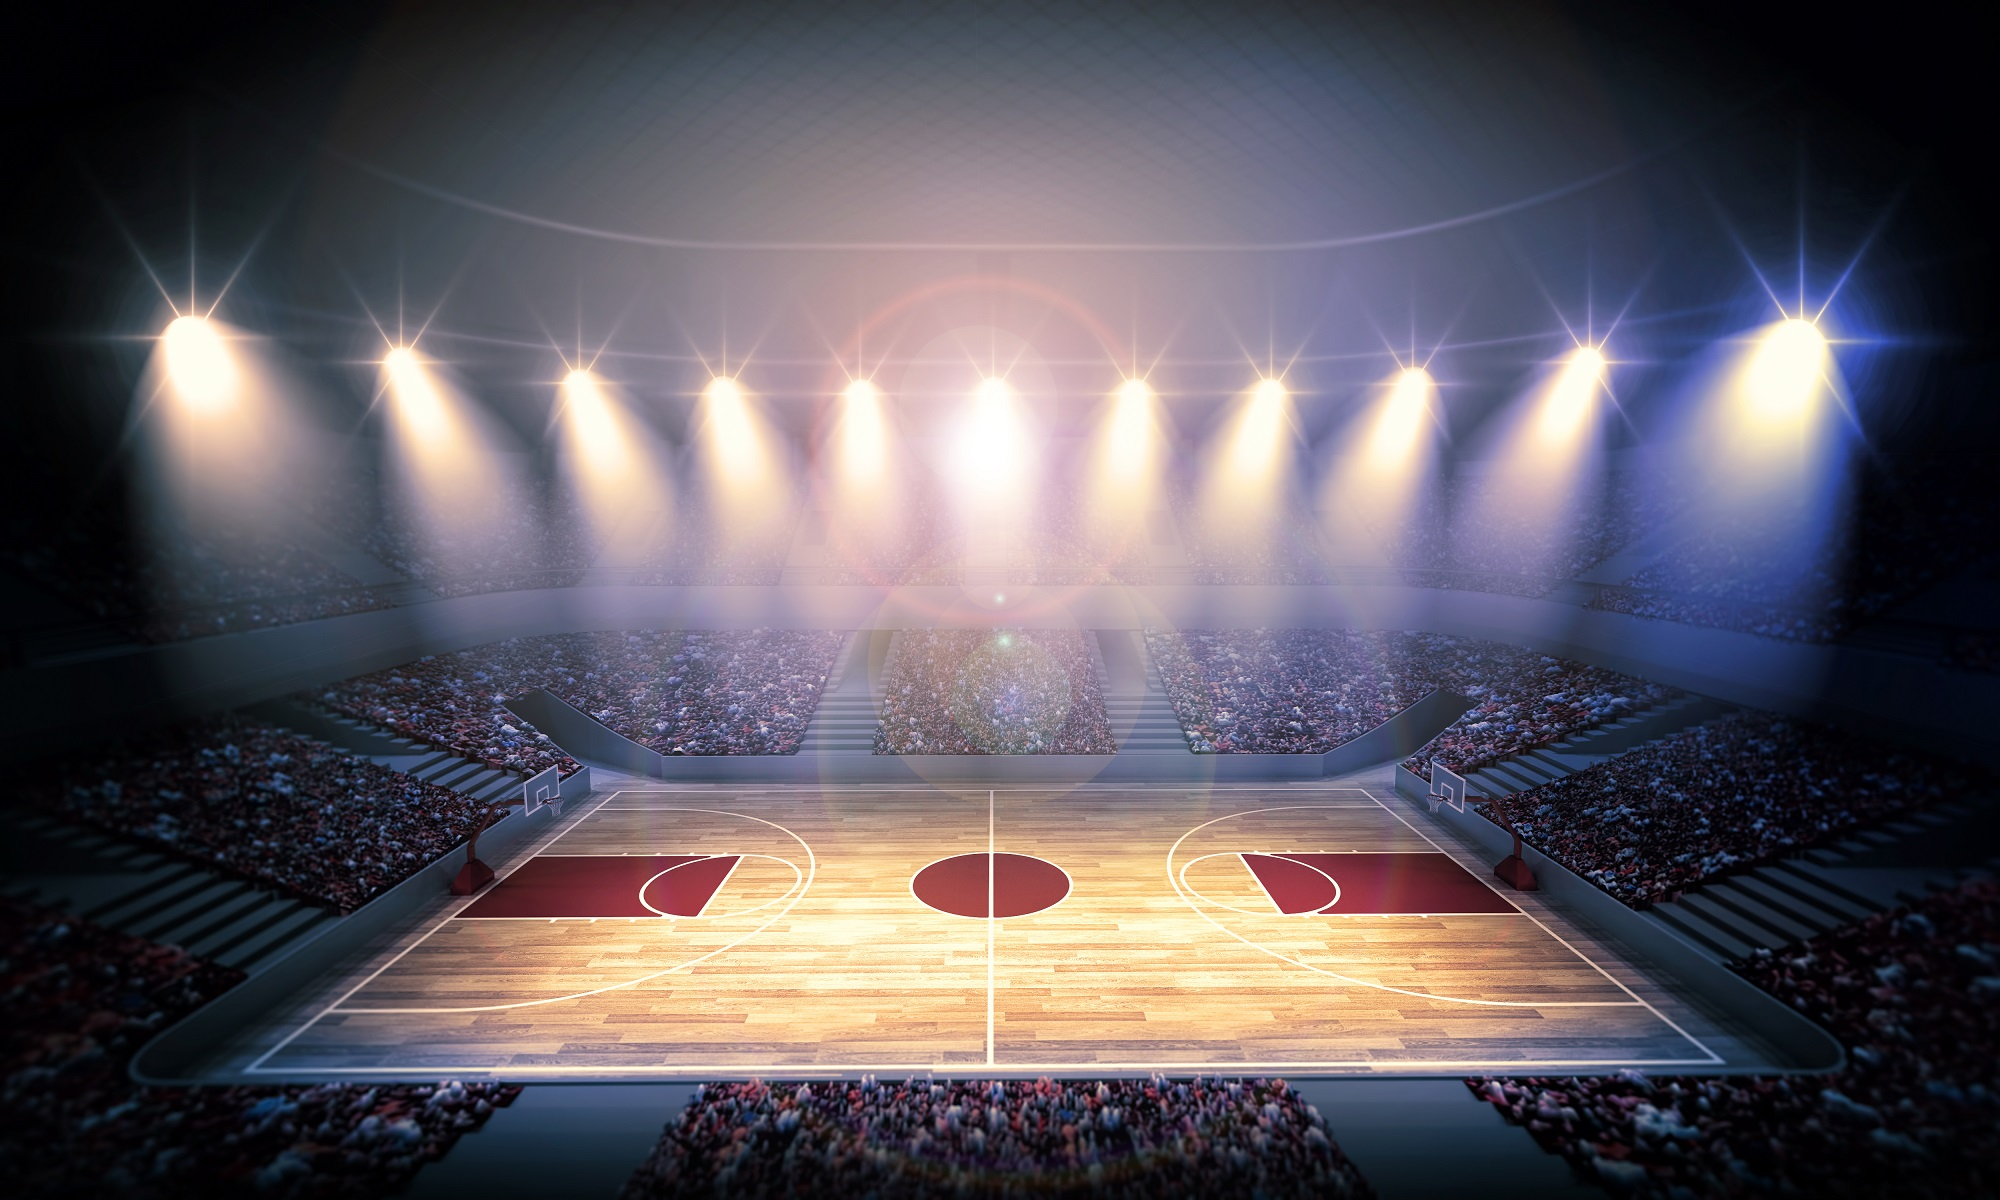 arena_background_2000_1200